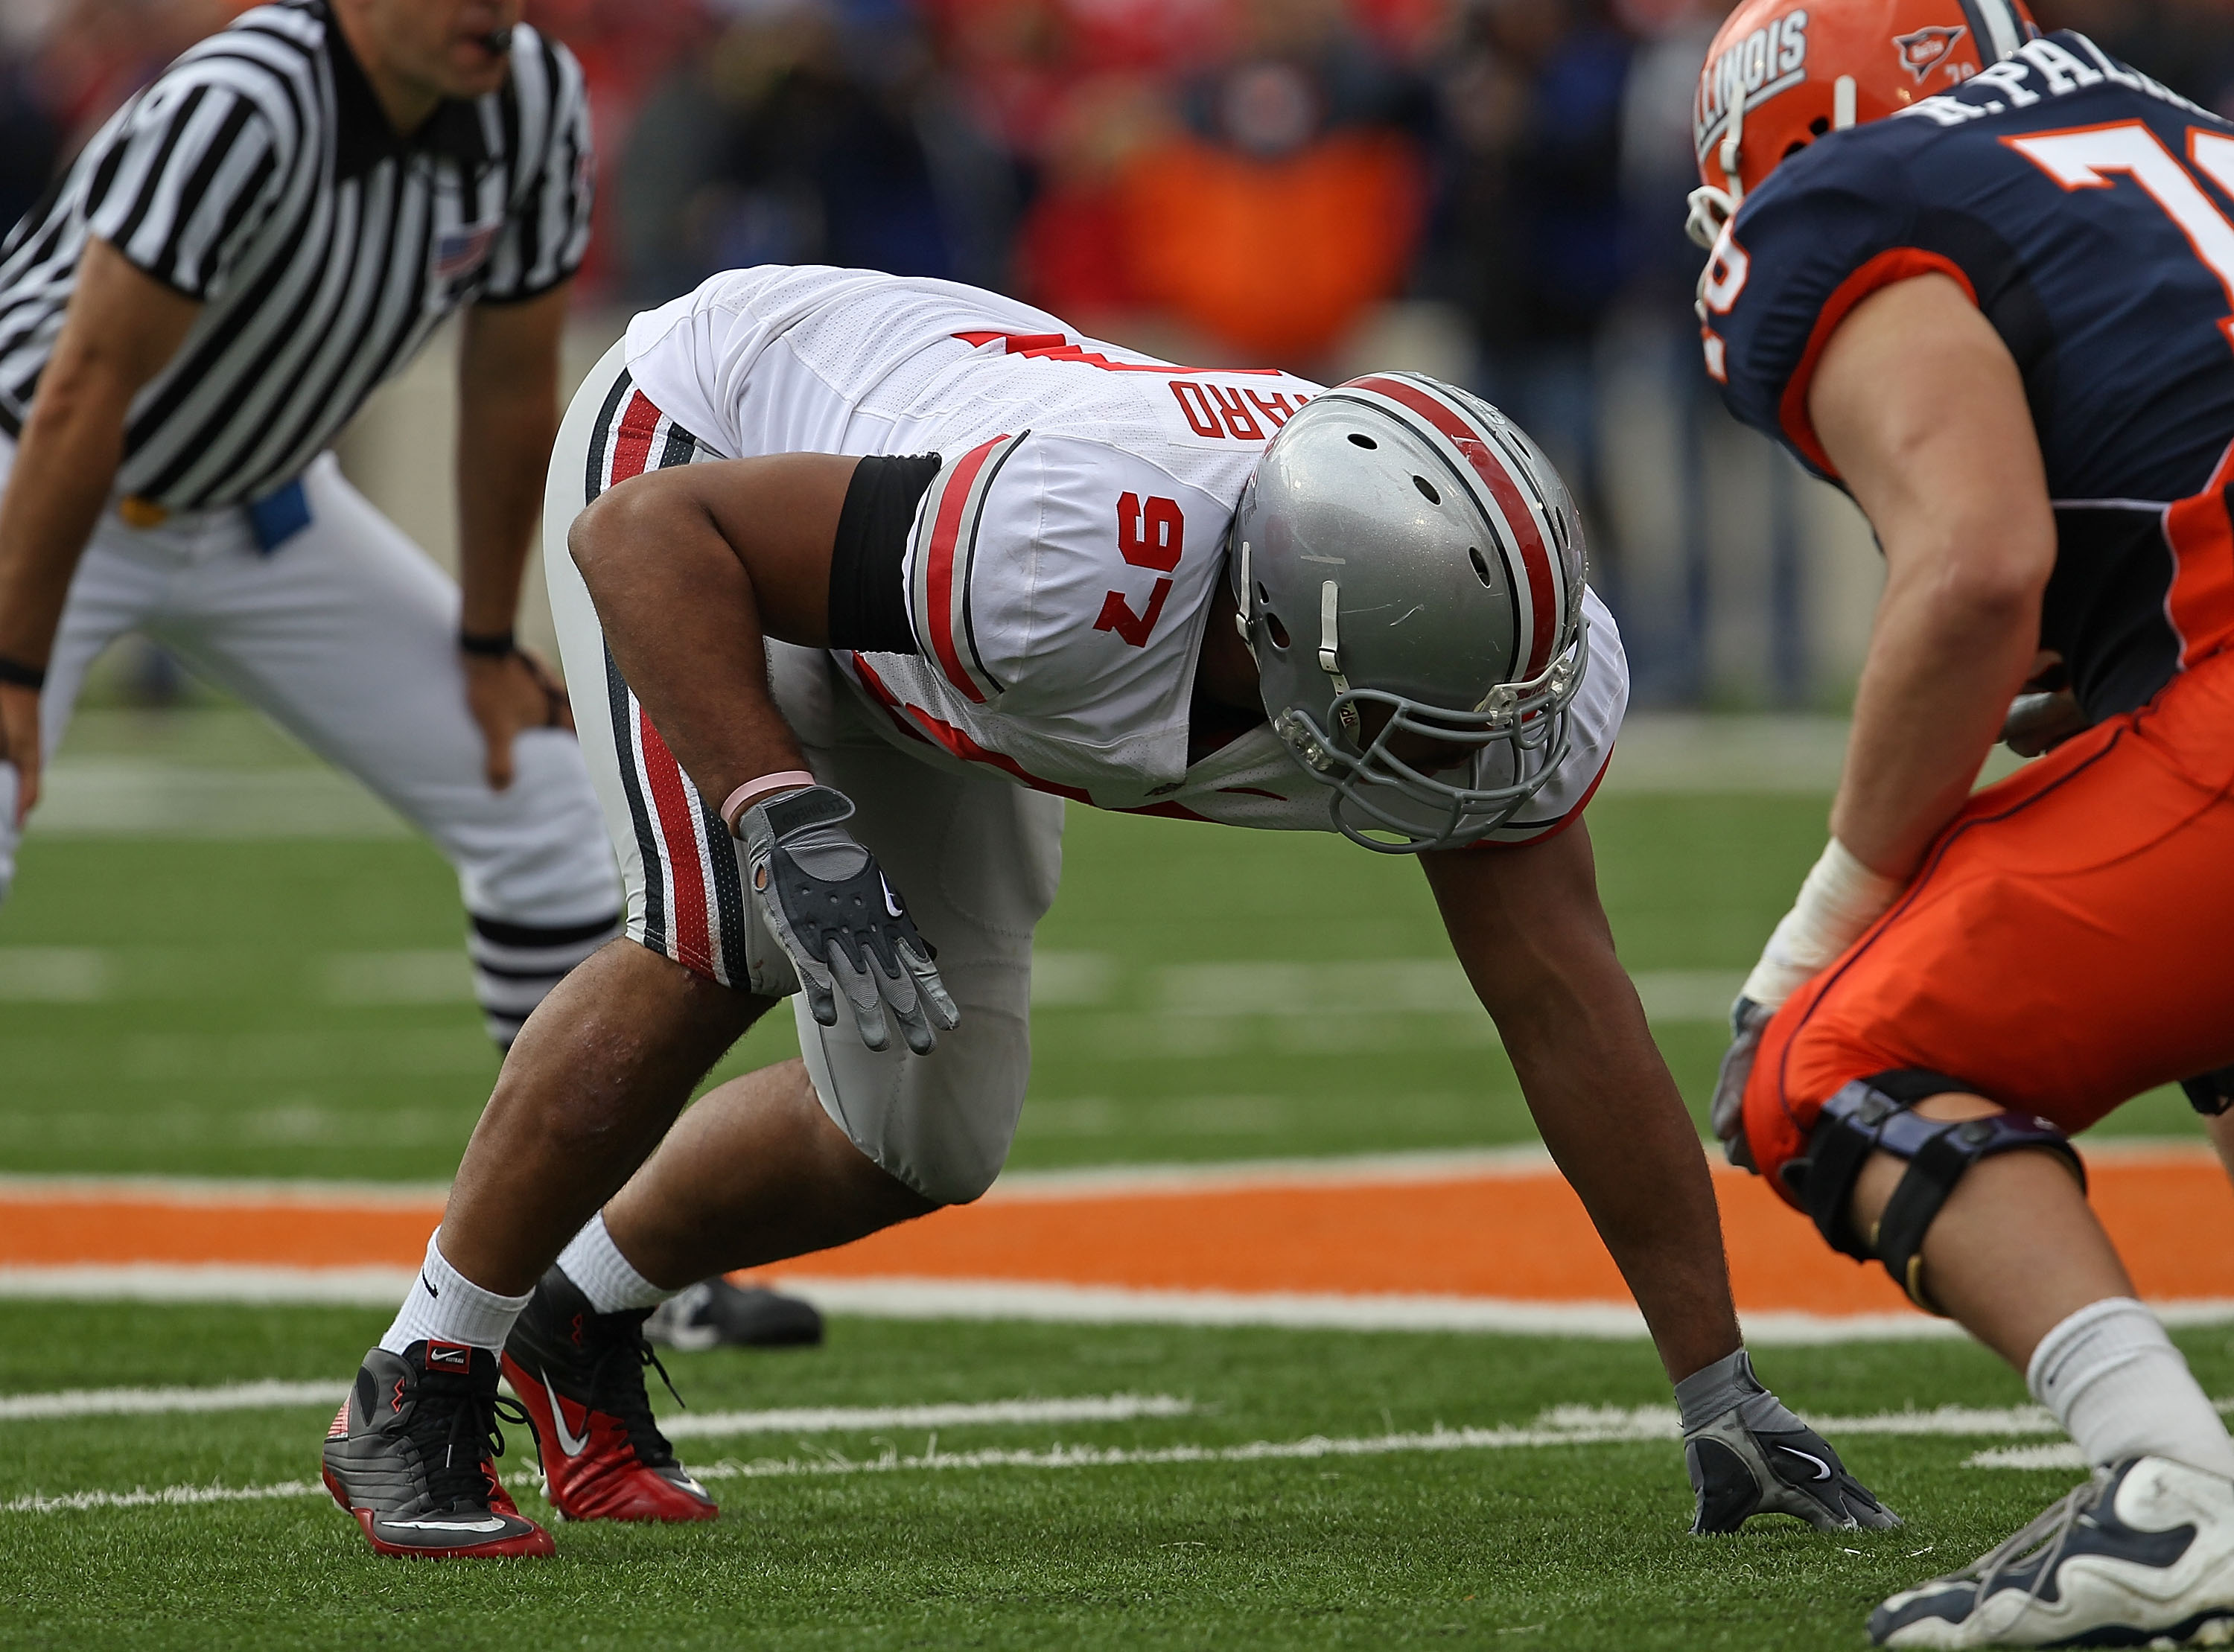 CHAMPAIGN, IL - OCTOBER 02: Cameron Heyward #97 of the Ohio State Buckeyes awaits the start of play against the Illinois Fighting Illini at Memorial Stadium on October 2, 2010 in Champaign, Illinois. Ohio State defeated Illinois 24-13. (Photo by Jonathan